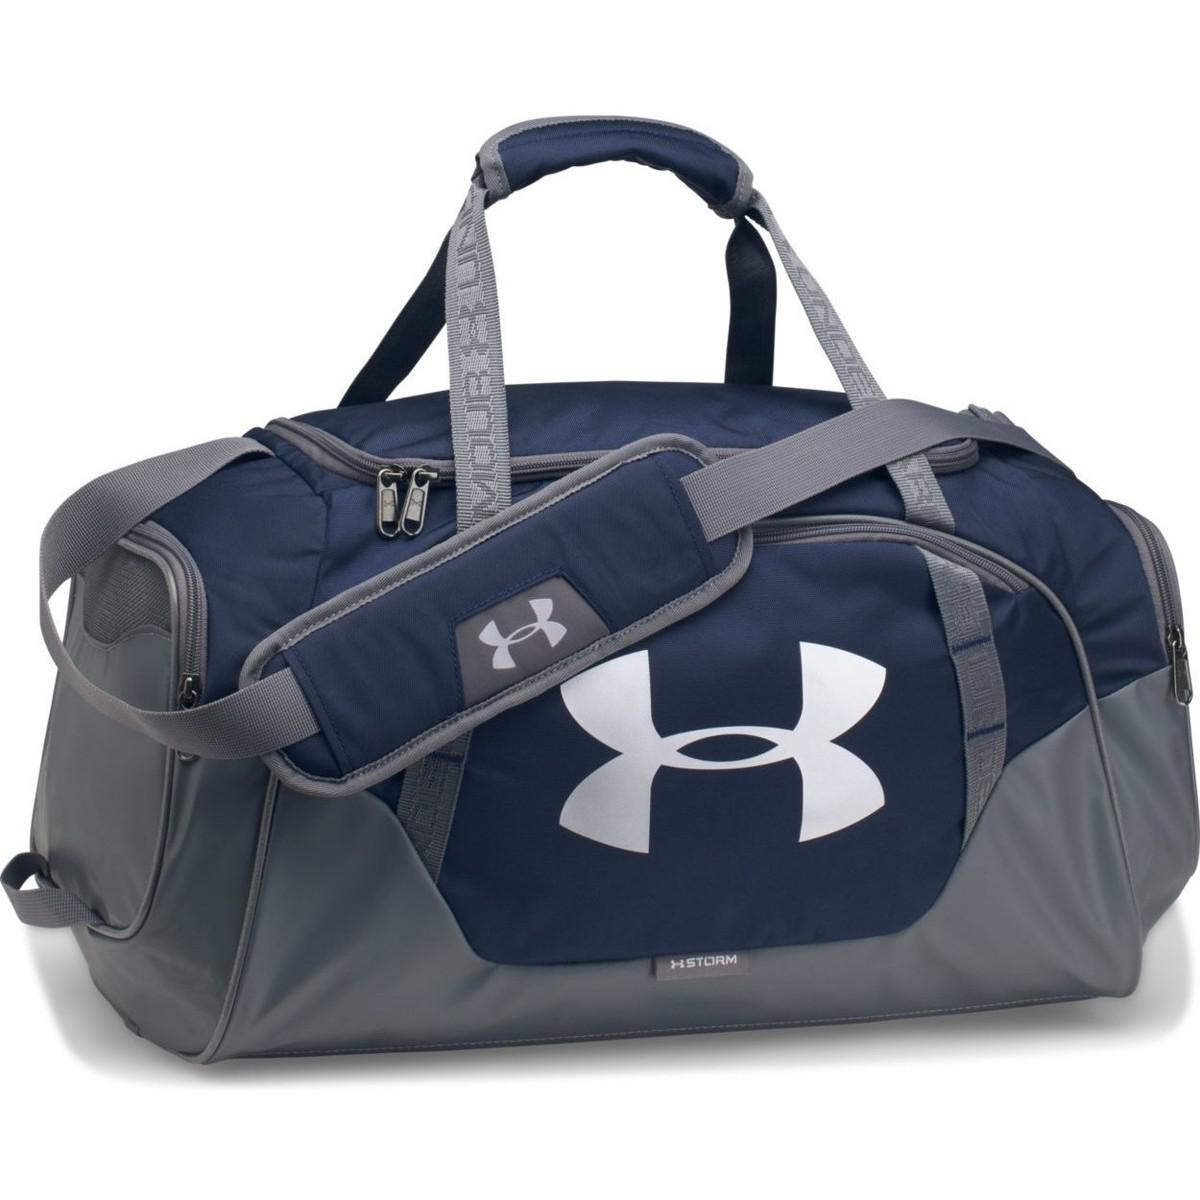 3baf0681a8 Under Armour Undeniable 3.0 Small Duffle Bag in Blue for Men - Lyst